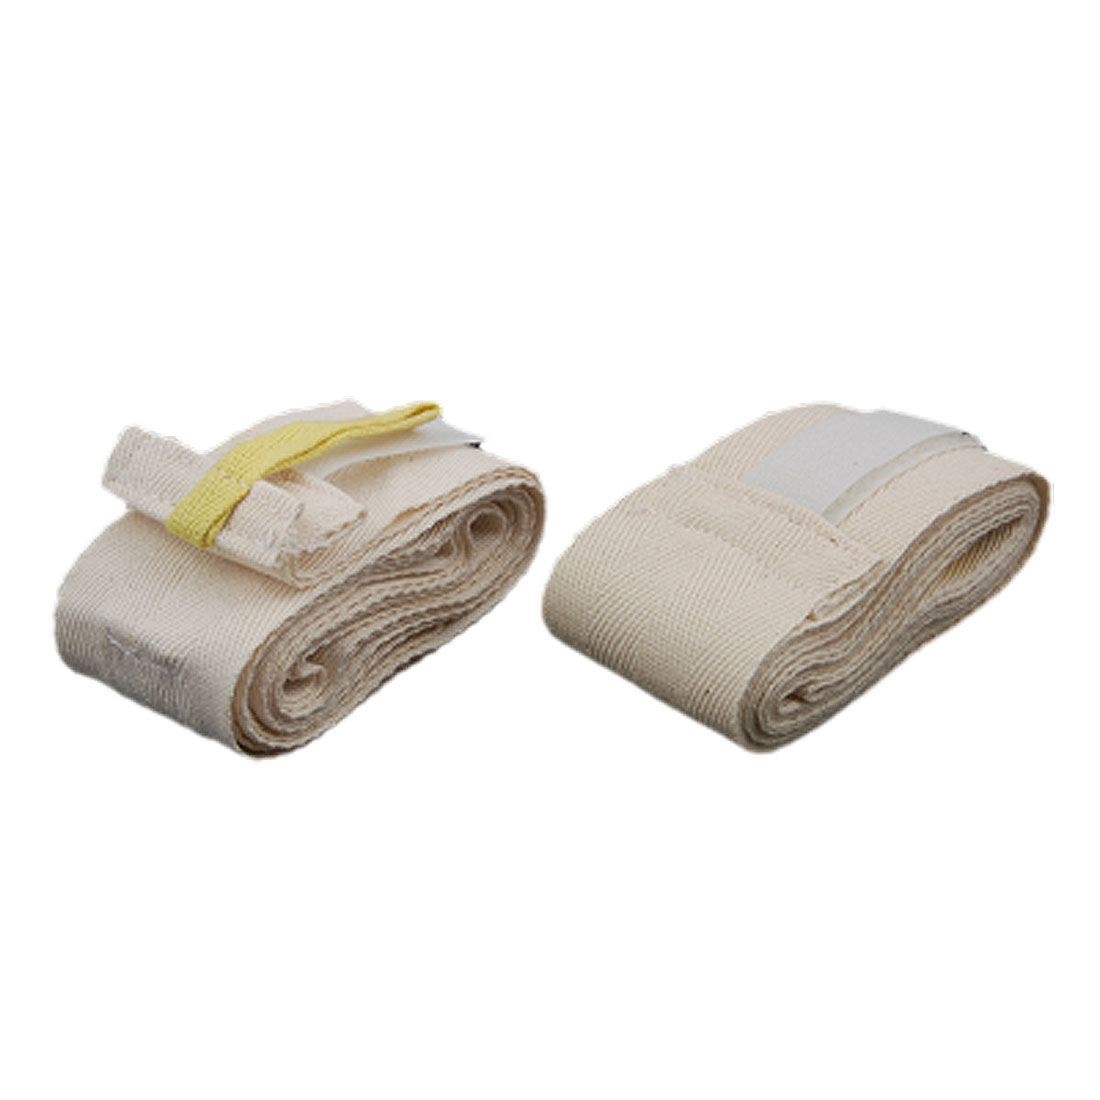 2 Pcs 220CM Martial Arts Beige Karate Taekwondo Belt W Hook and Loop Fastener